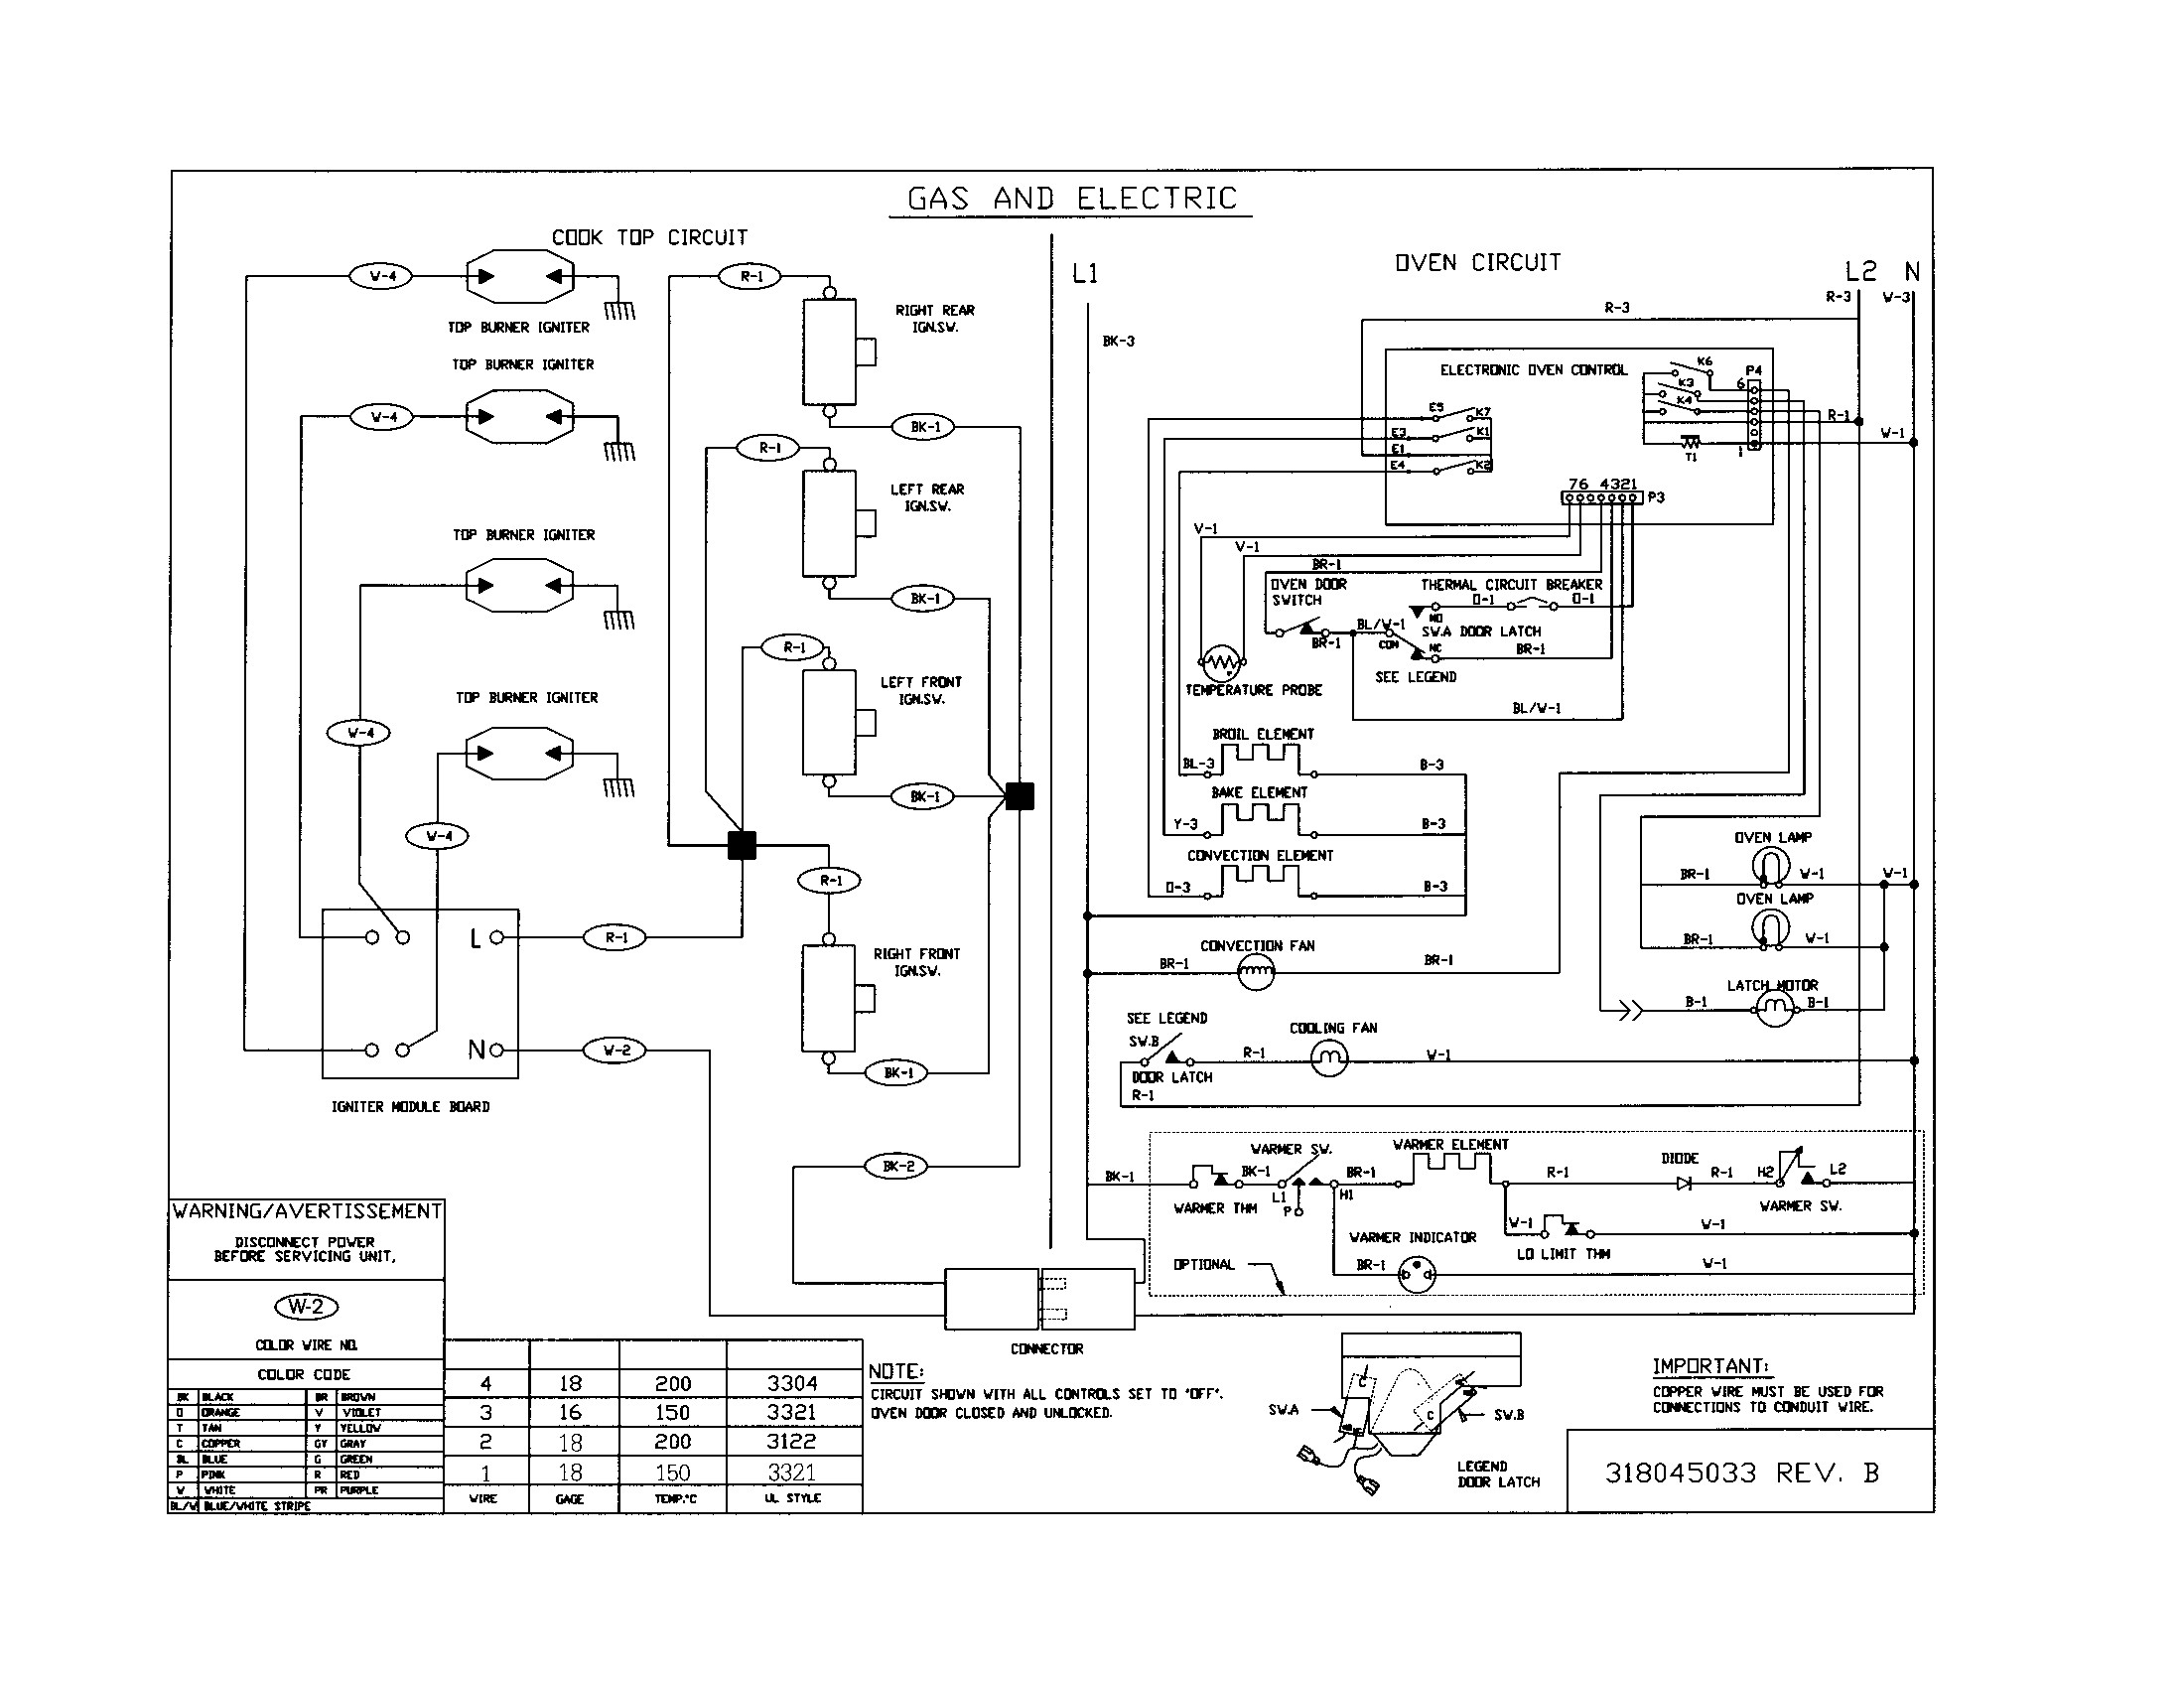 kenmore stove top wiring diagram model 790 42739403 kenmore model 110 wiring diagram get wiring diagram for kenmore dryer model 110 download